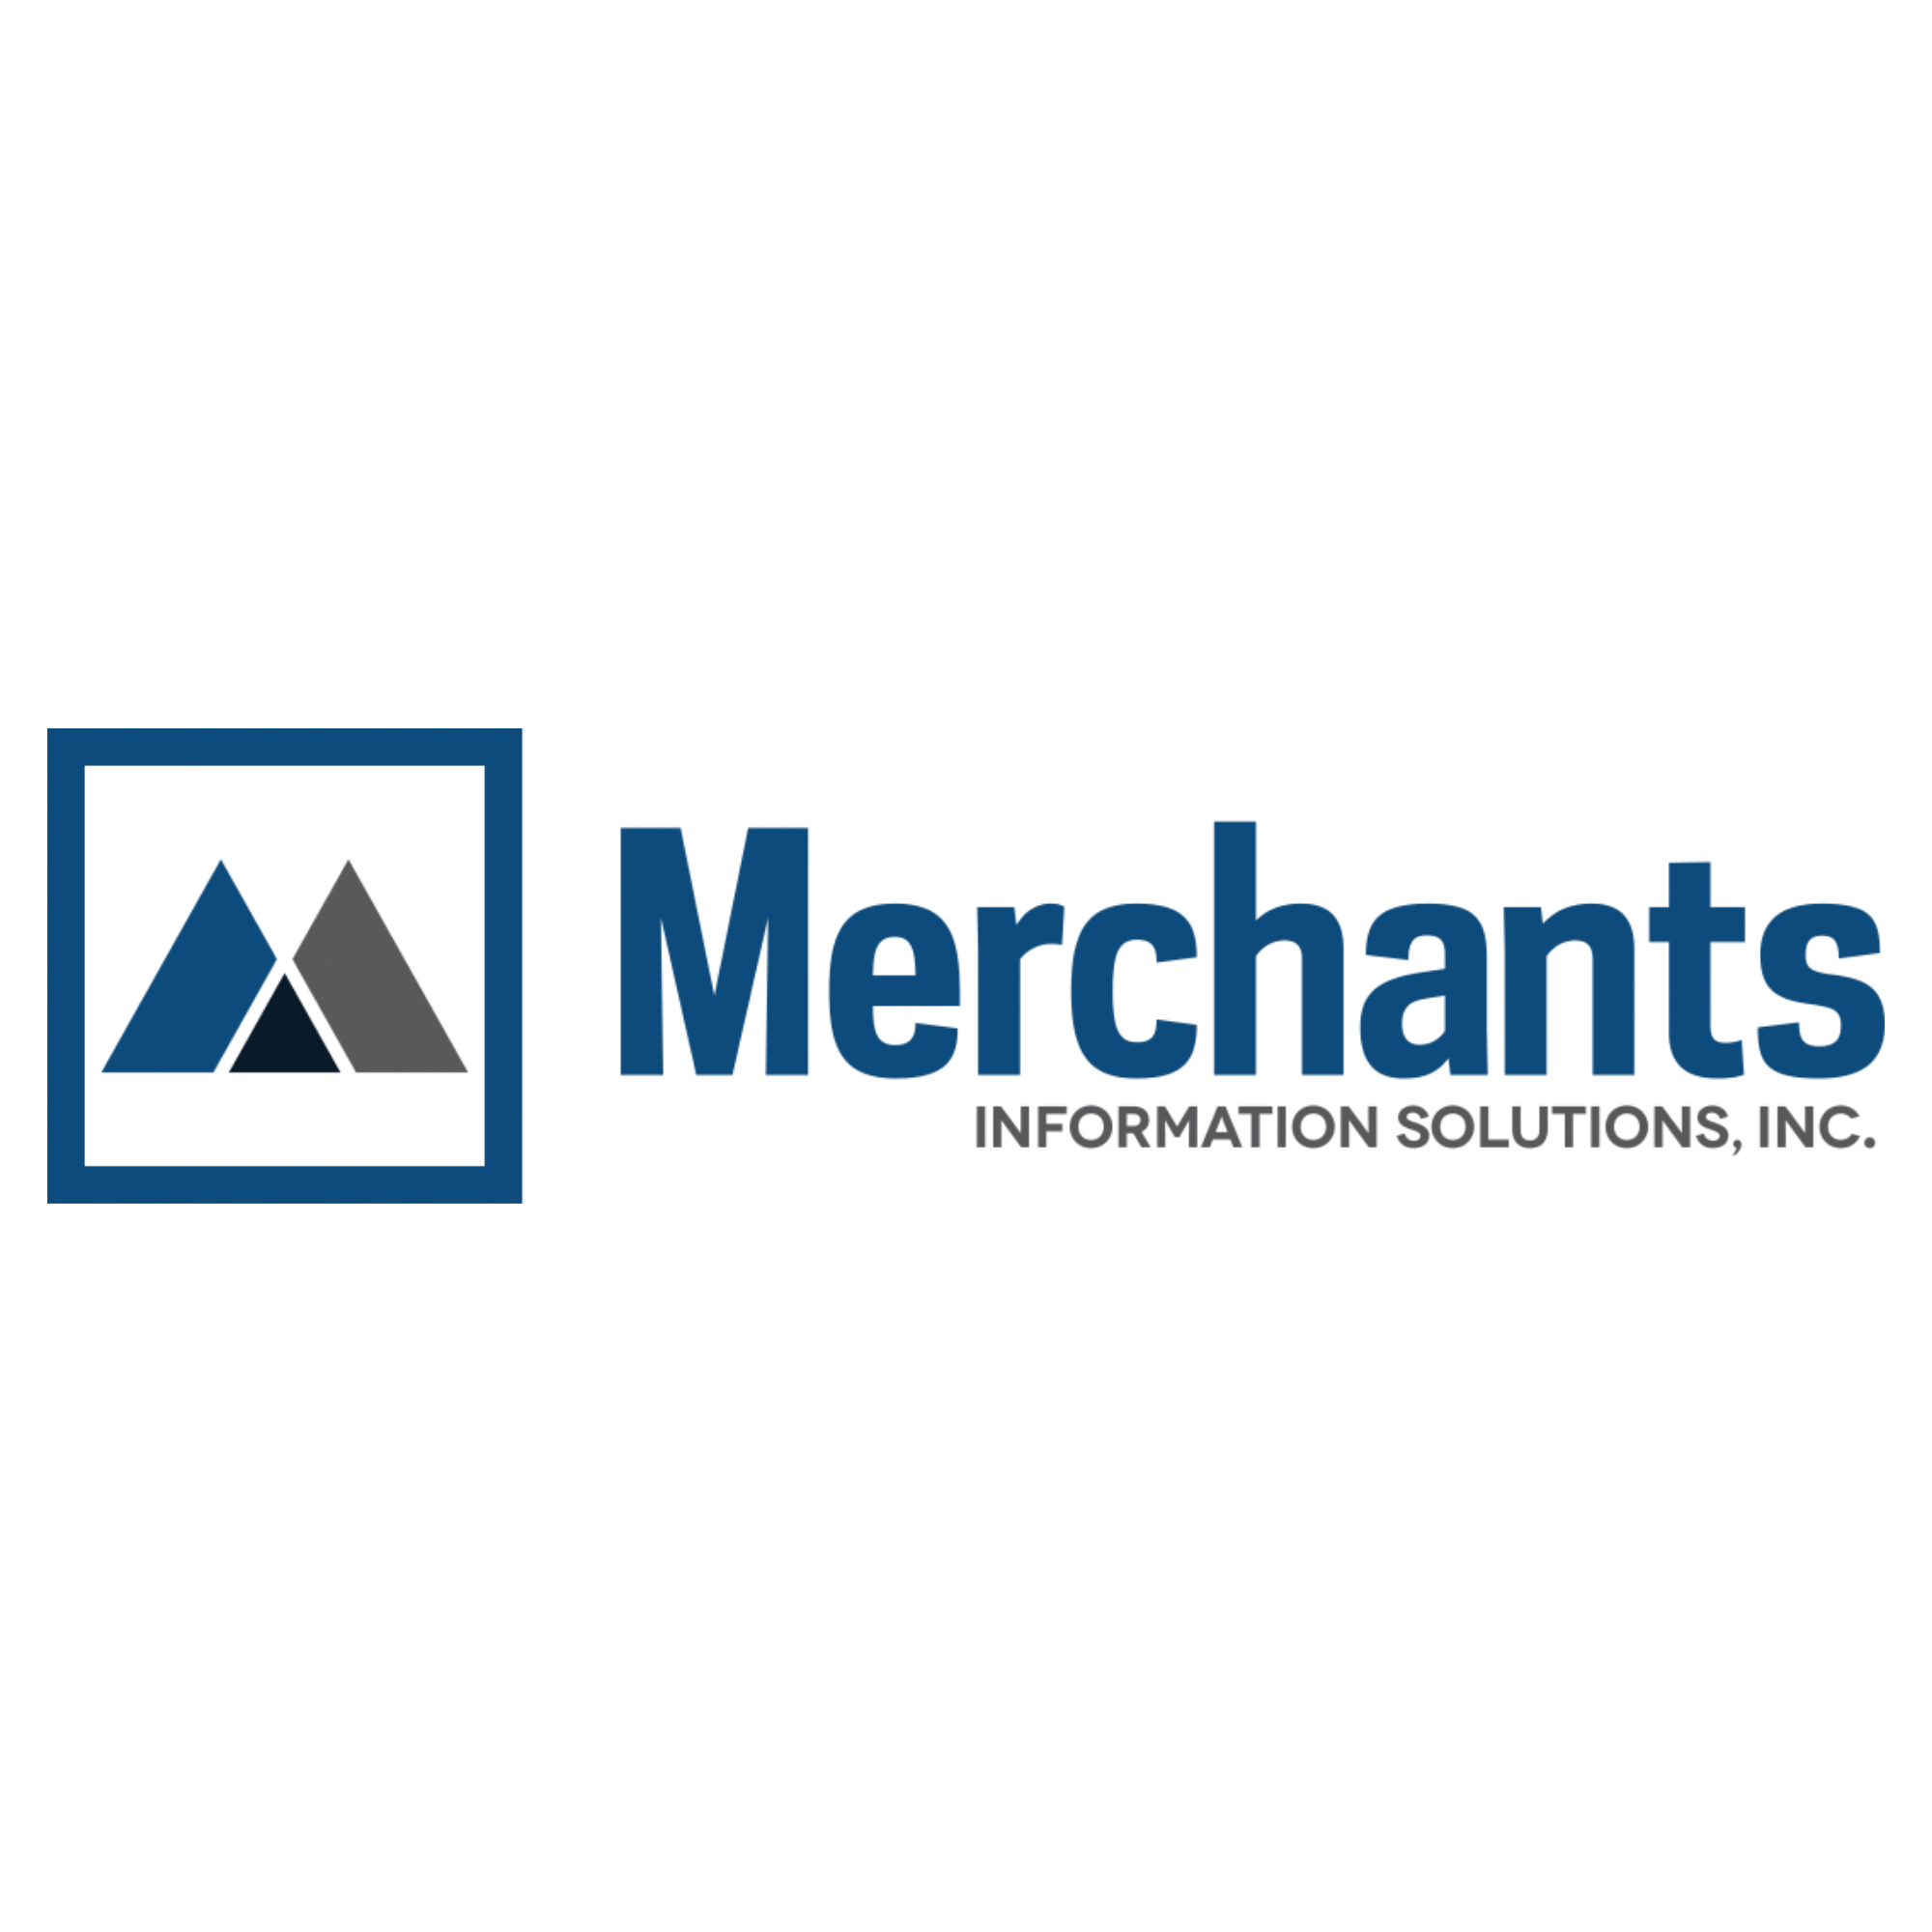 Merchants Information Solutions, INC.